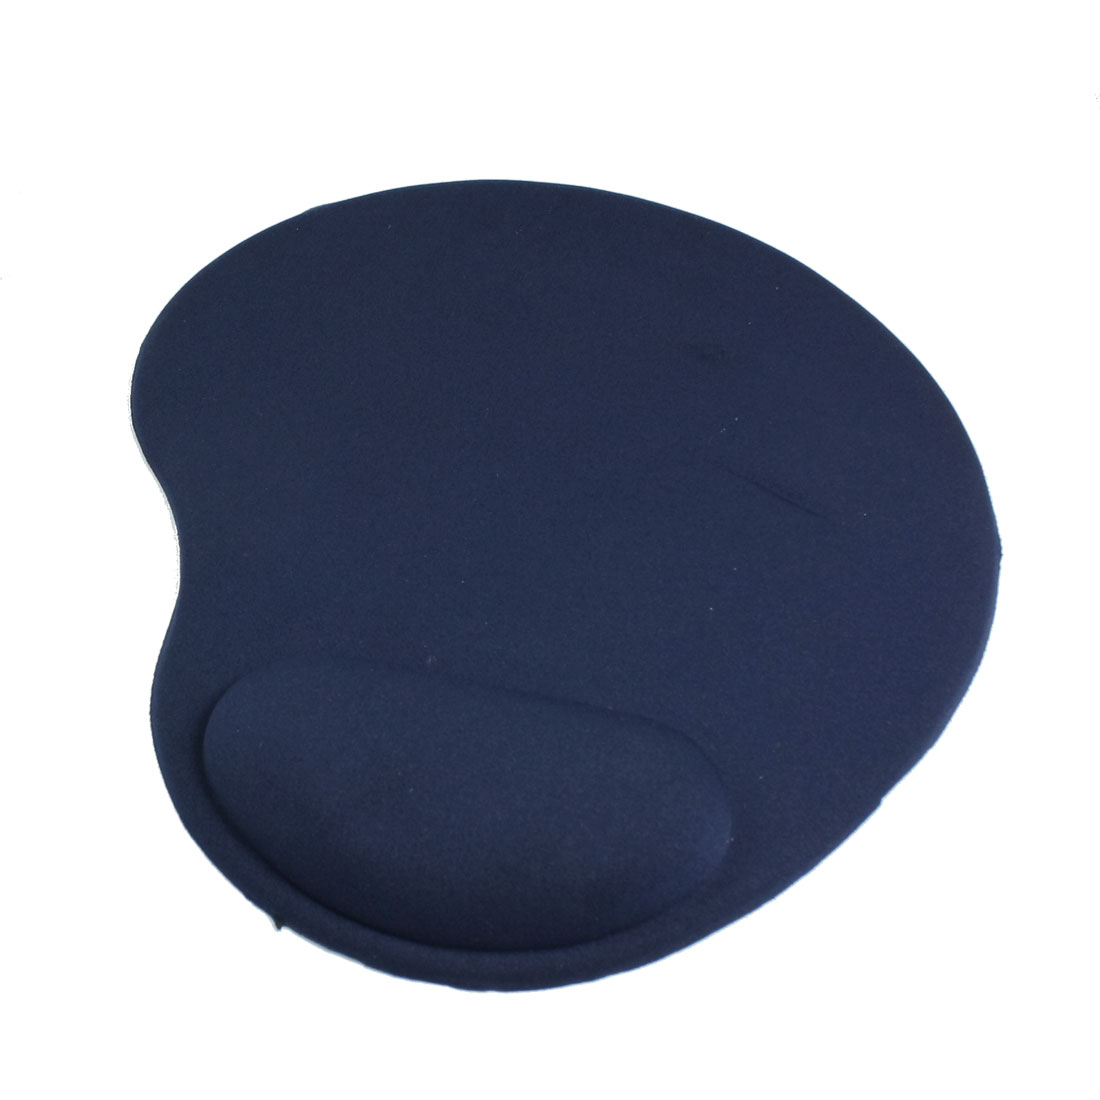 Home Office PC Computer Wrist Rested Soft Mouse Pad Blue